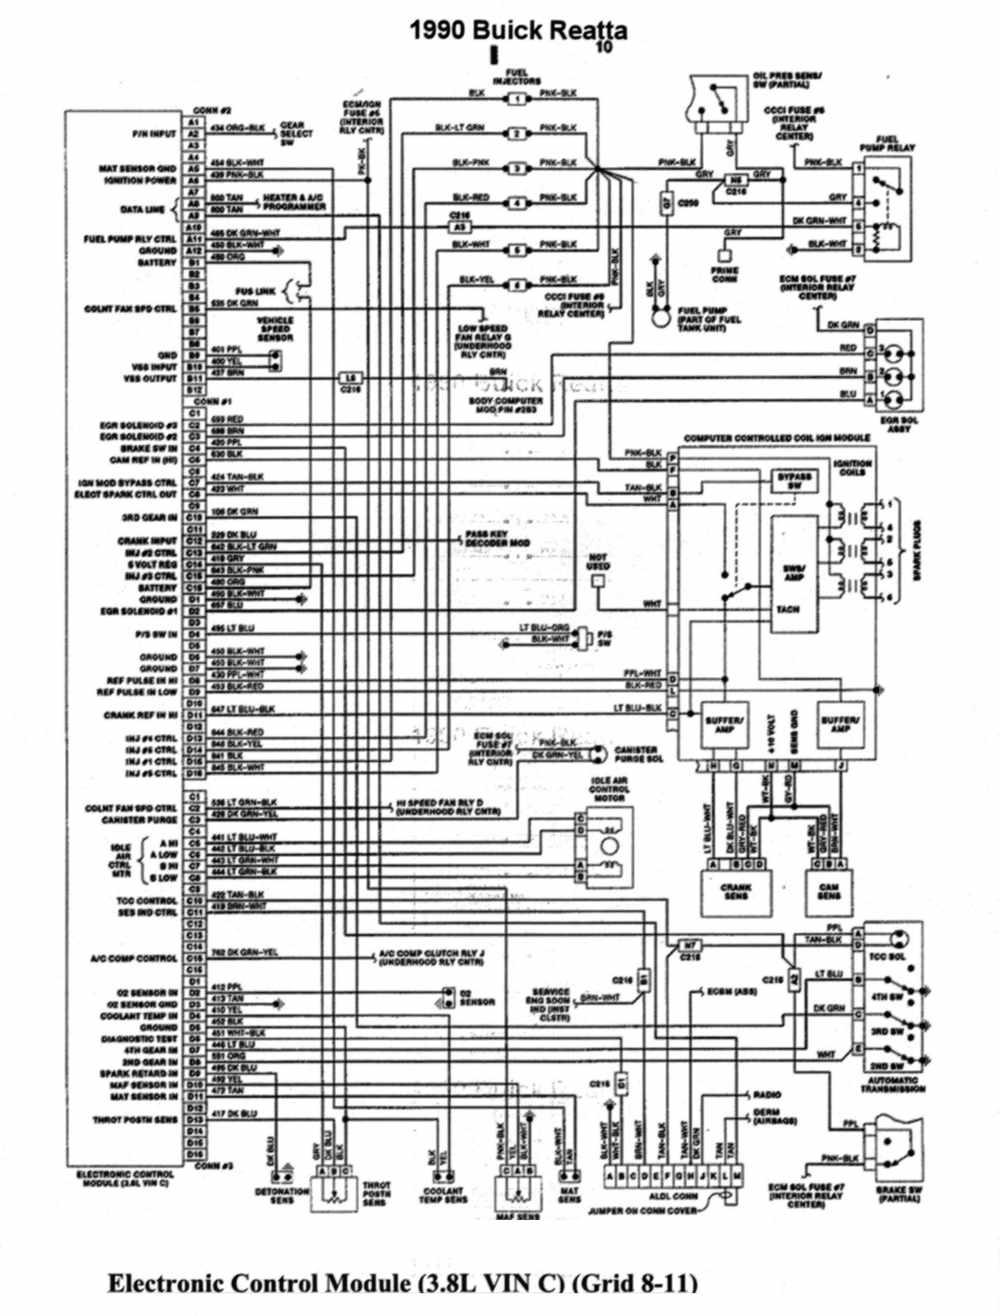 Camaro 3 8 Engine Diagram 95 Buick Lesabre Ignition Wiring Trusted Diagrams Schematic Chevy 1995 Park